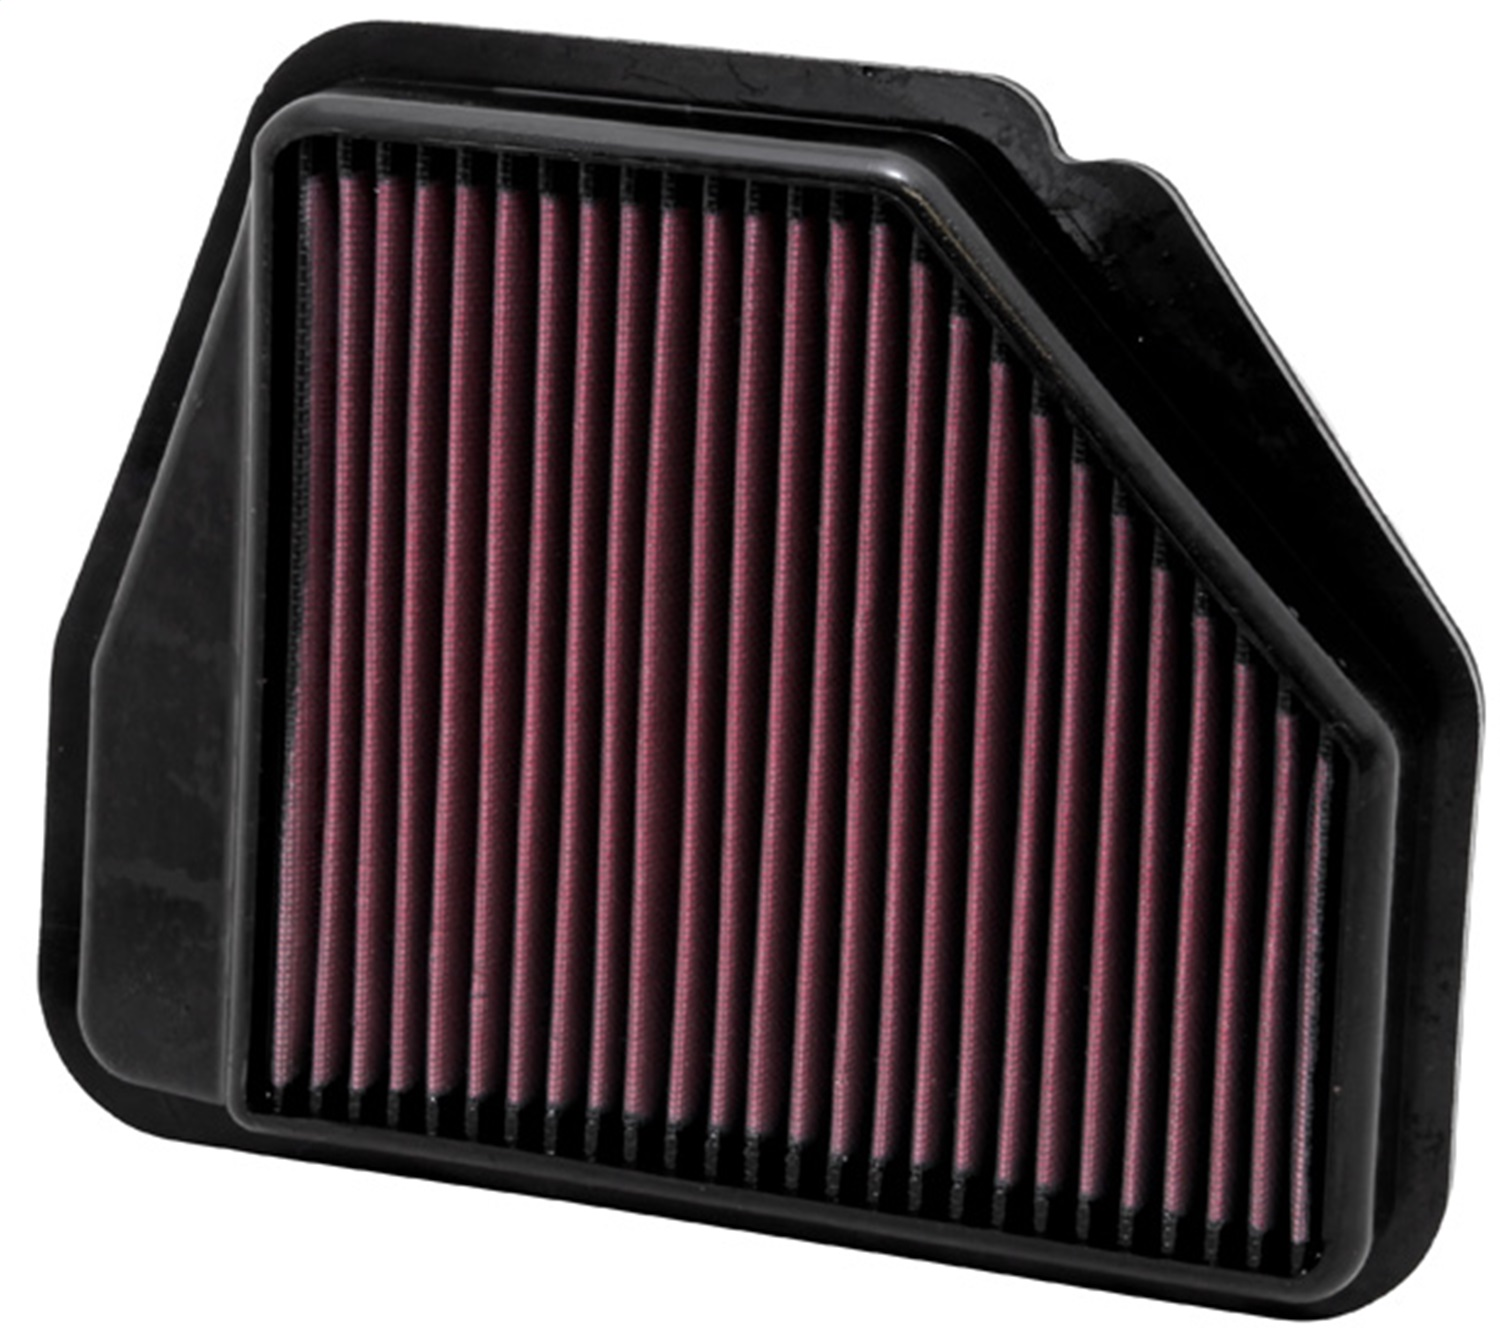 K&N Filters 33-2956 Air Filter Fits 12-14 Captiva Sport 33-2956